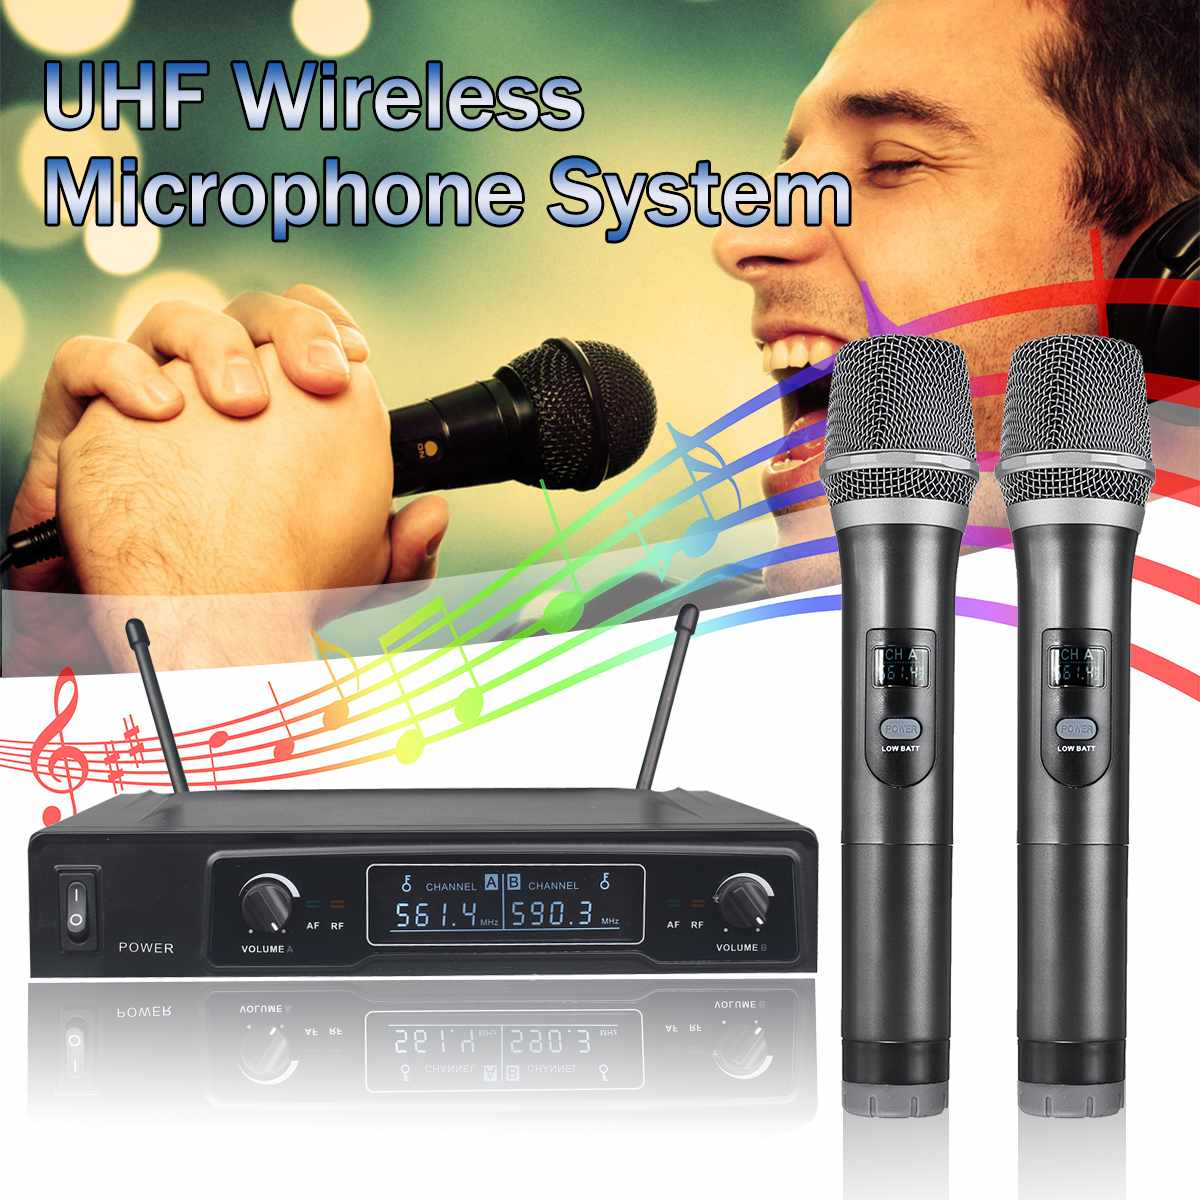 Dual Channel 2 Handheld Wireless UHF Microphone System LCD Display Karaoke Receiver Home KTV Equipment with AntennaDual Channel 2 Handheld Wireless UHF Microphone System LCD Display Karaoke Receiver Home KTV Equipment with Antenna